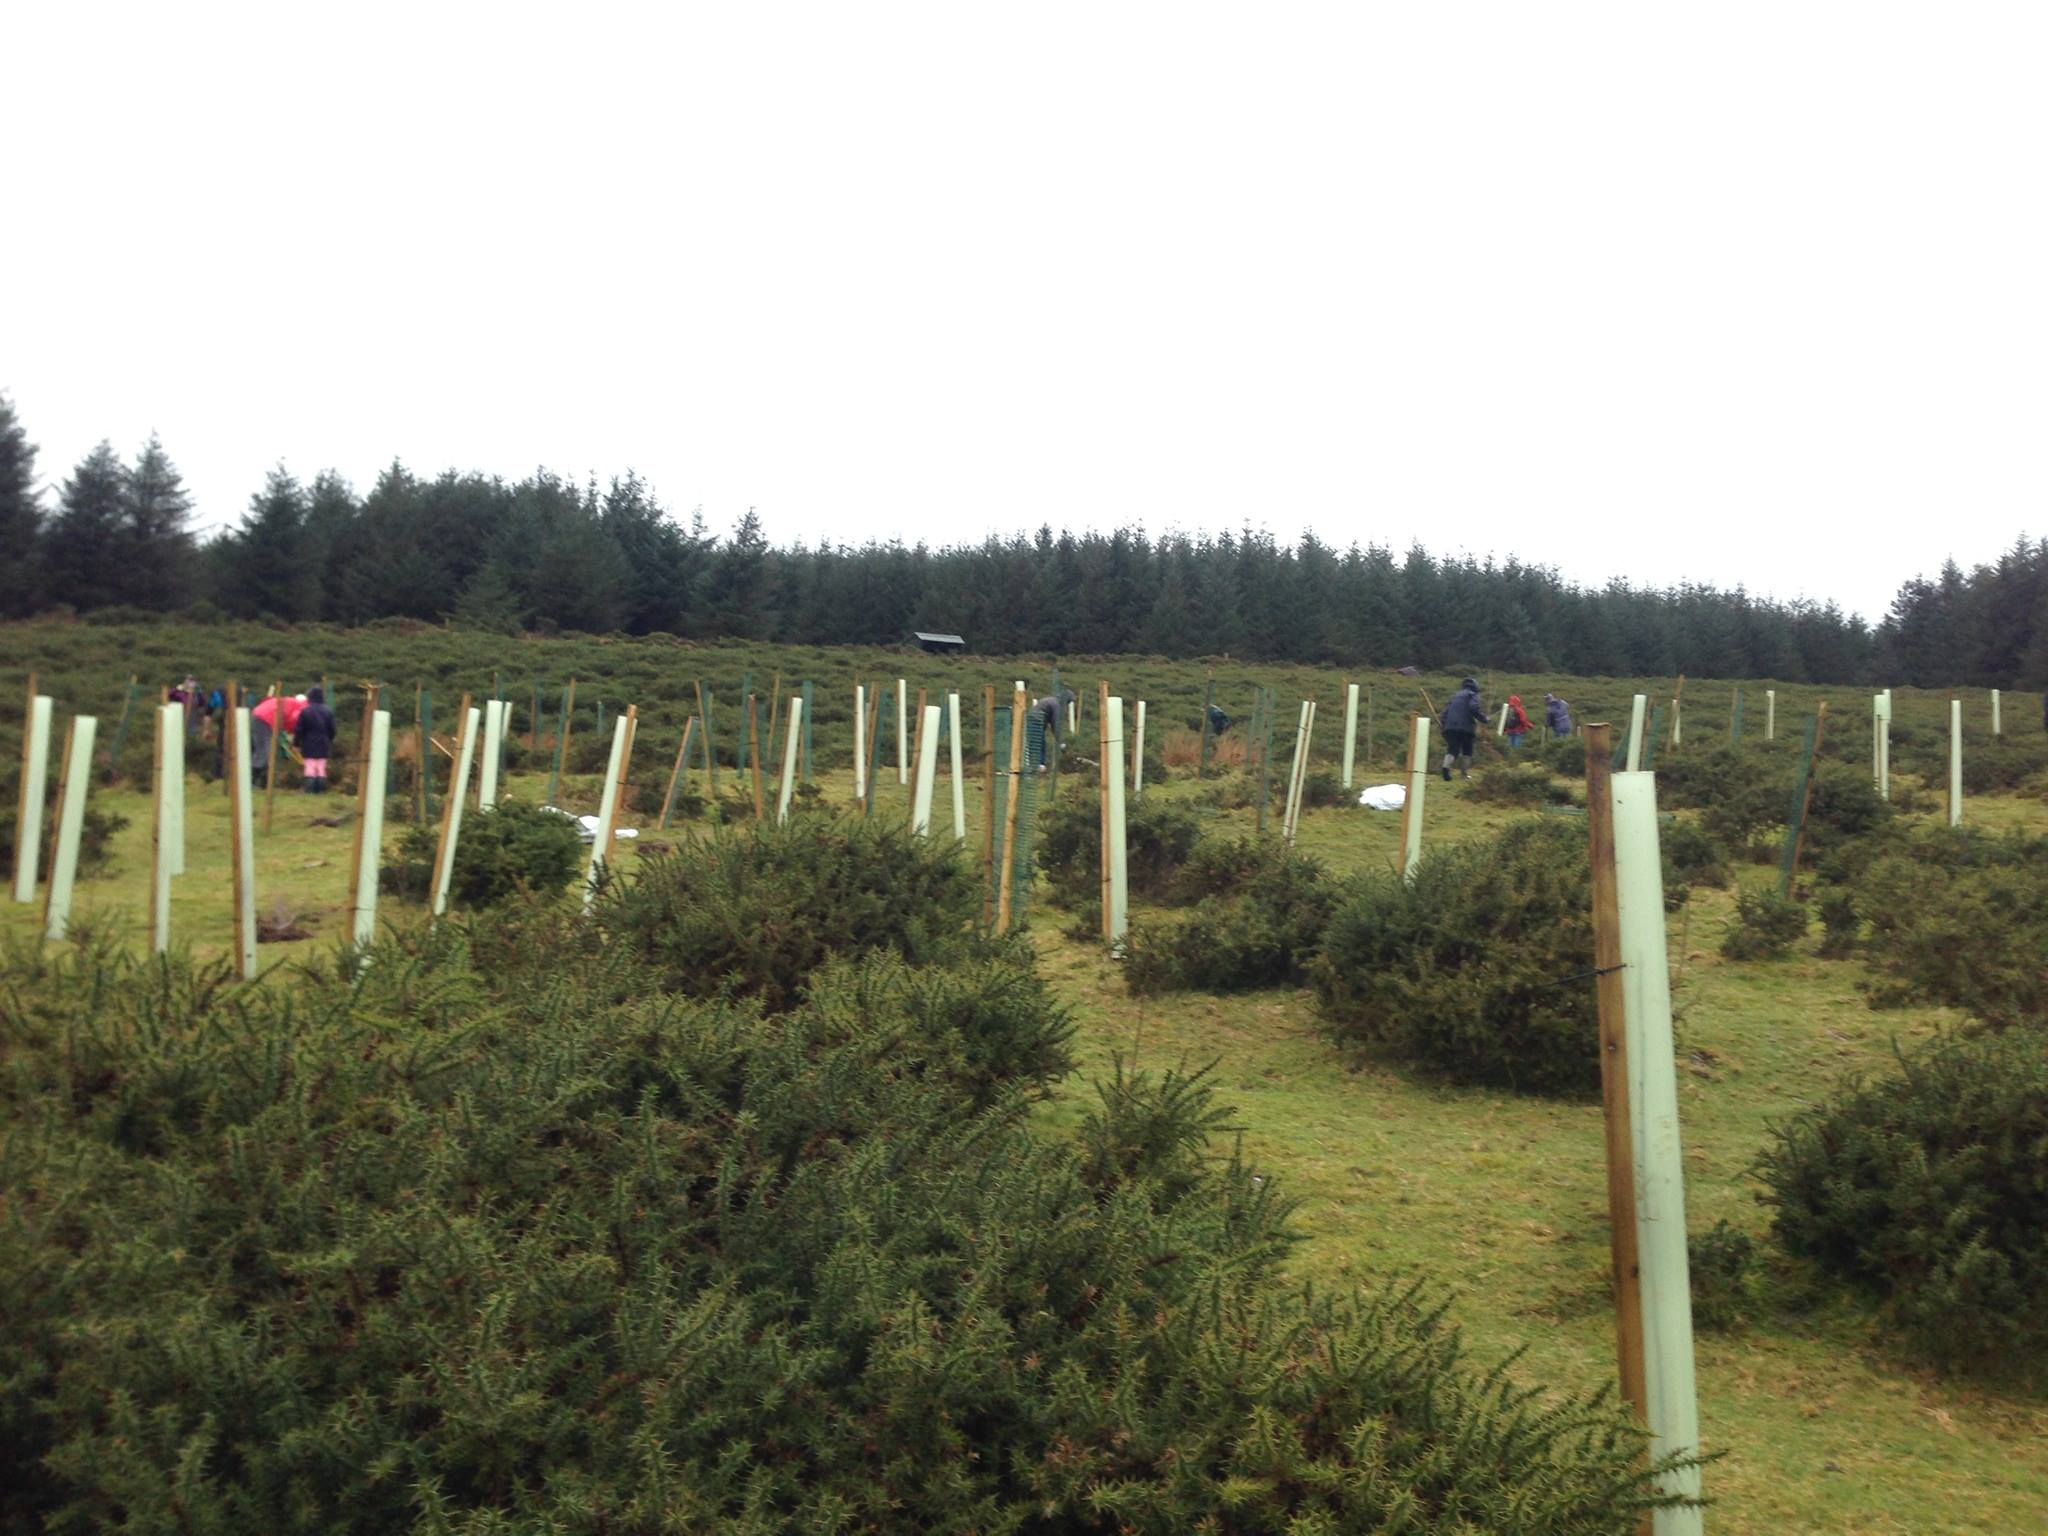 Garden trees for screening  Volunteers putting tree guards on our young trees Interested in